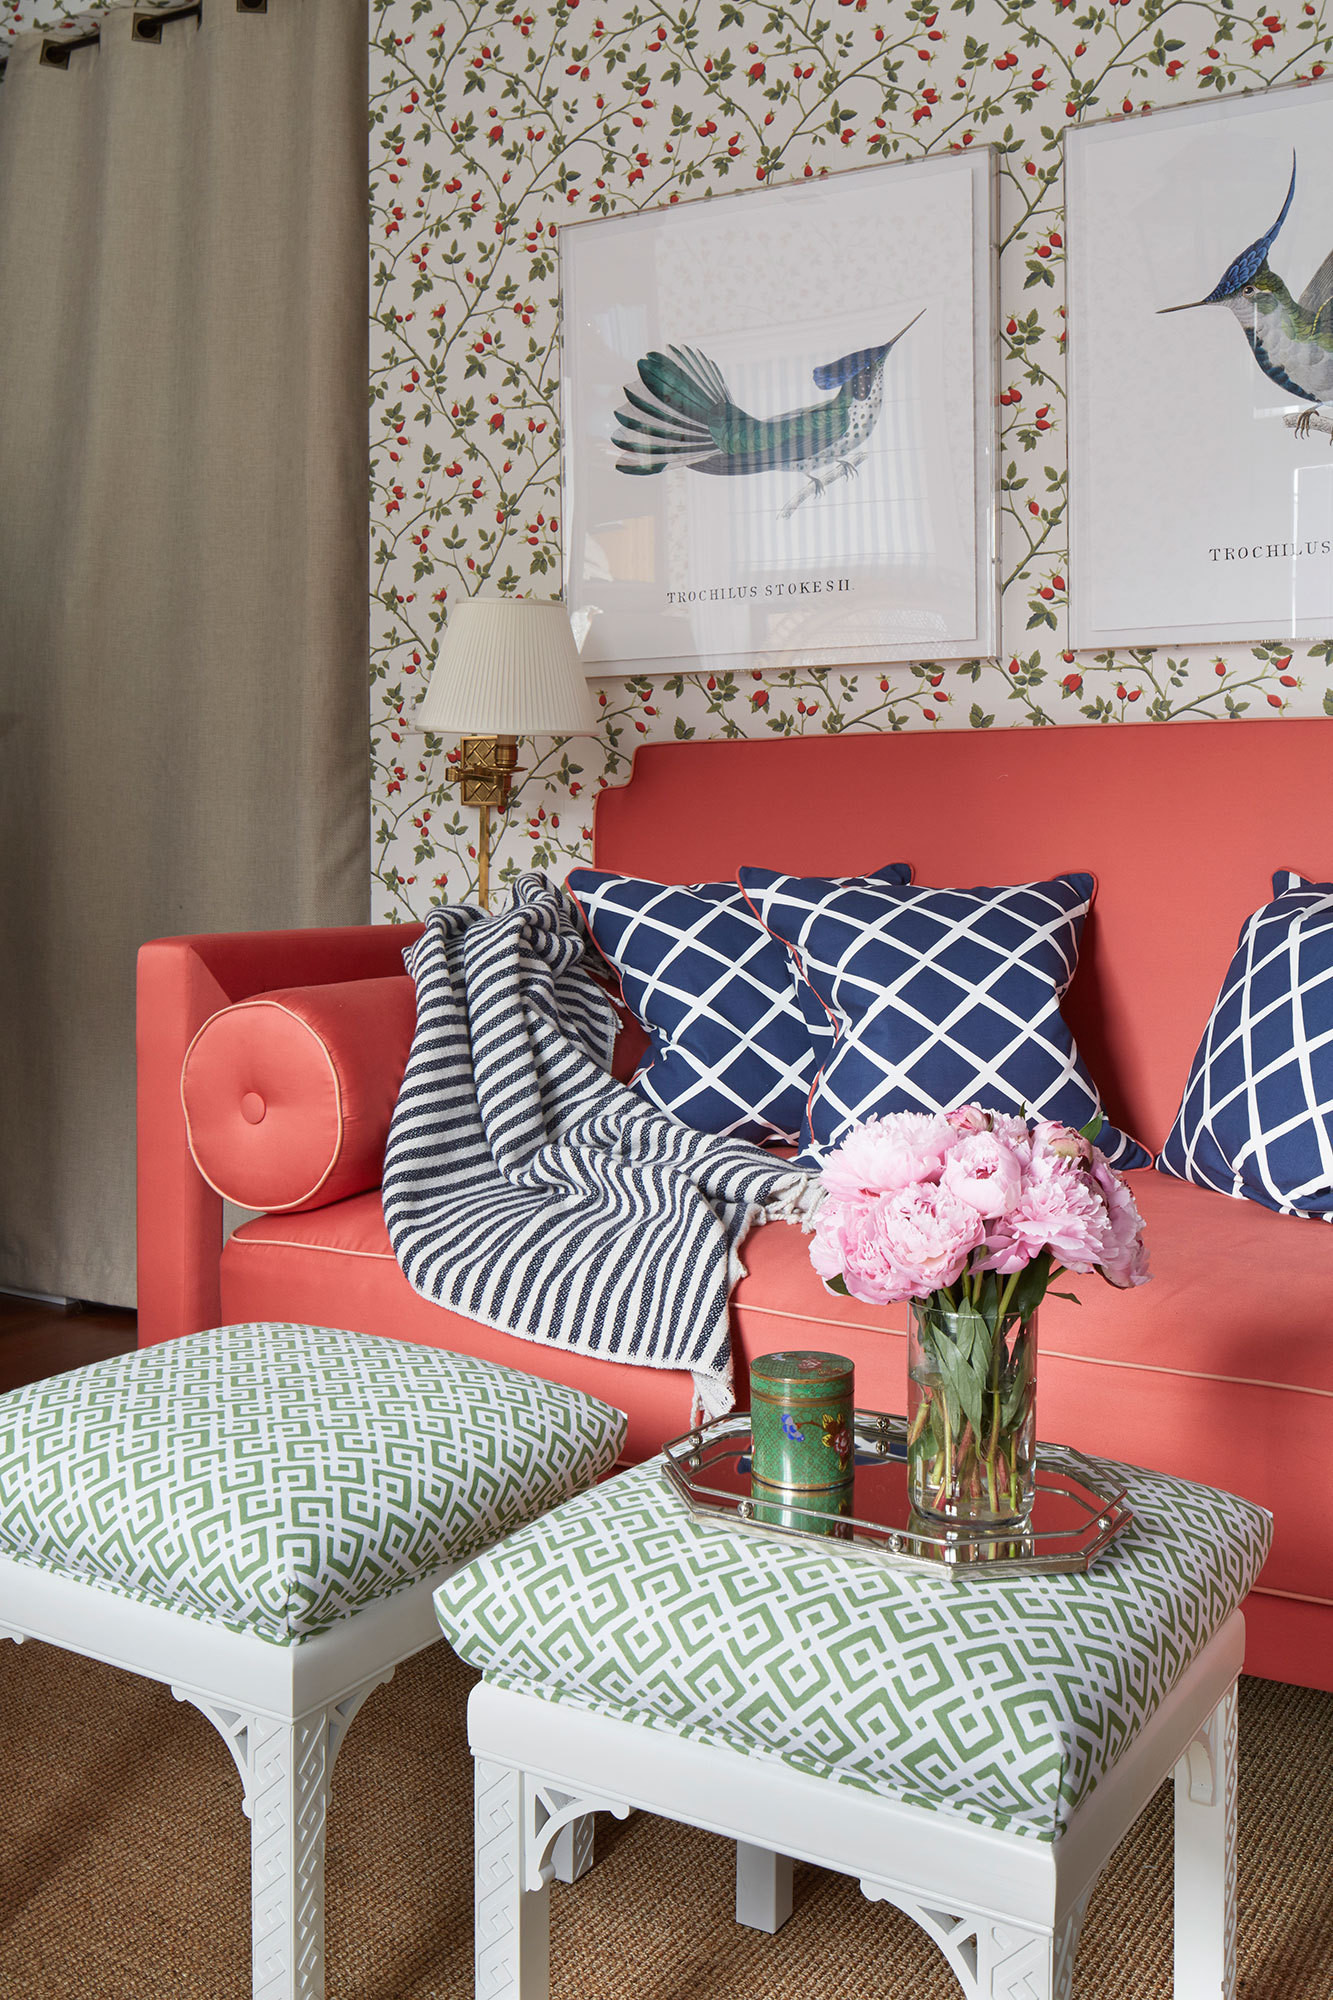 A coral-hued daybed topped with throw pillows by Serena & Lily is backed by Stark's Kerstin wall covering.